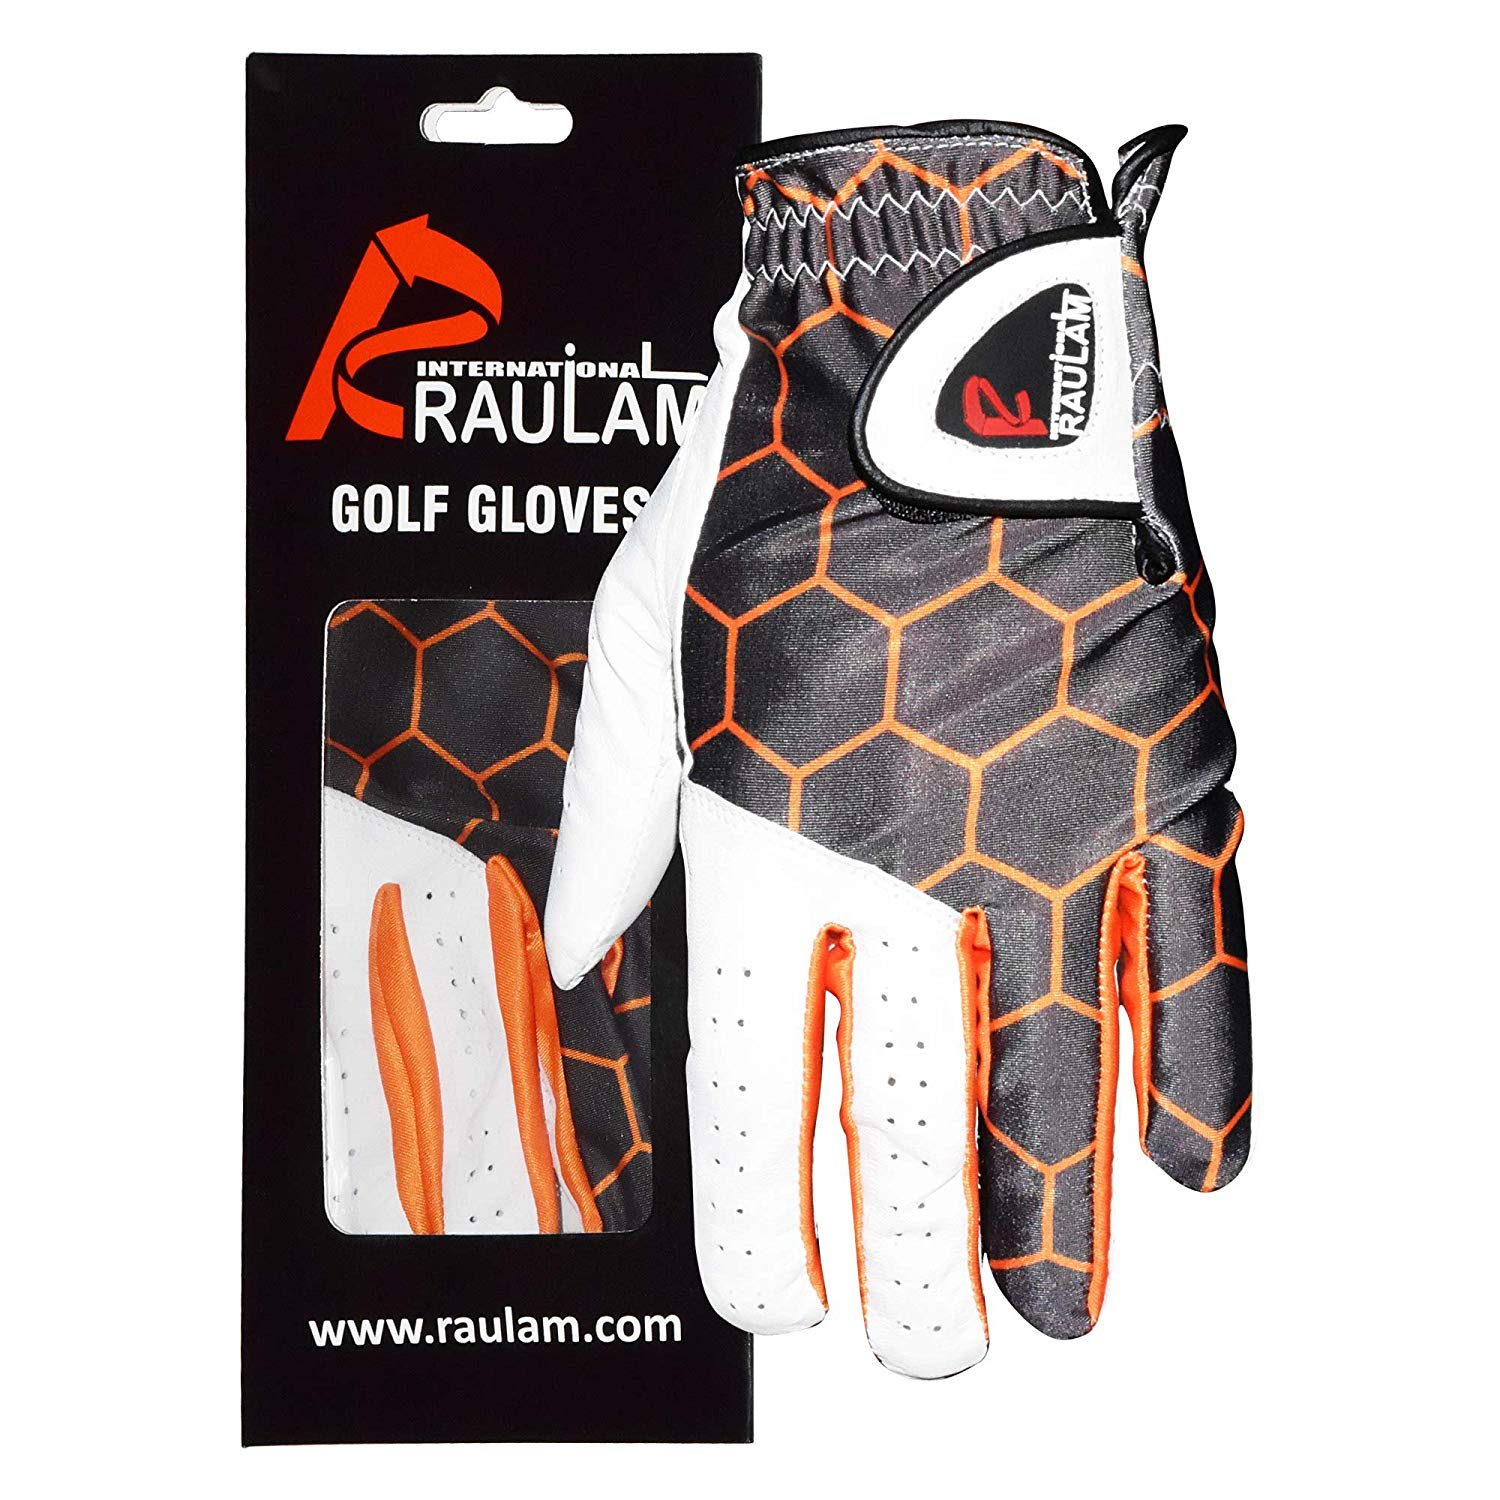 Golf Glove for Men and Women with Orange Sublimation, Left and Right Hand Golf Gloves, Genuine Cabretta Leather, Soft Flexible Durable and Comfortable-Golf Glove Men Left Hand/Right Hand By Raulam Int